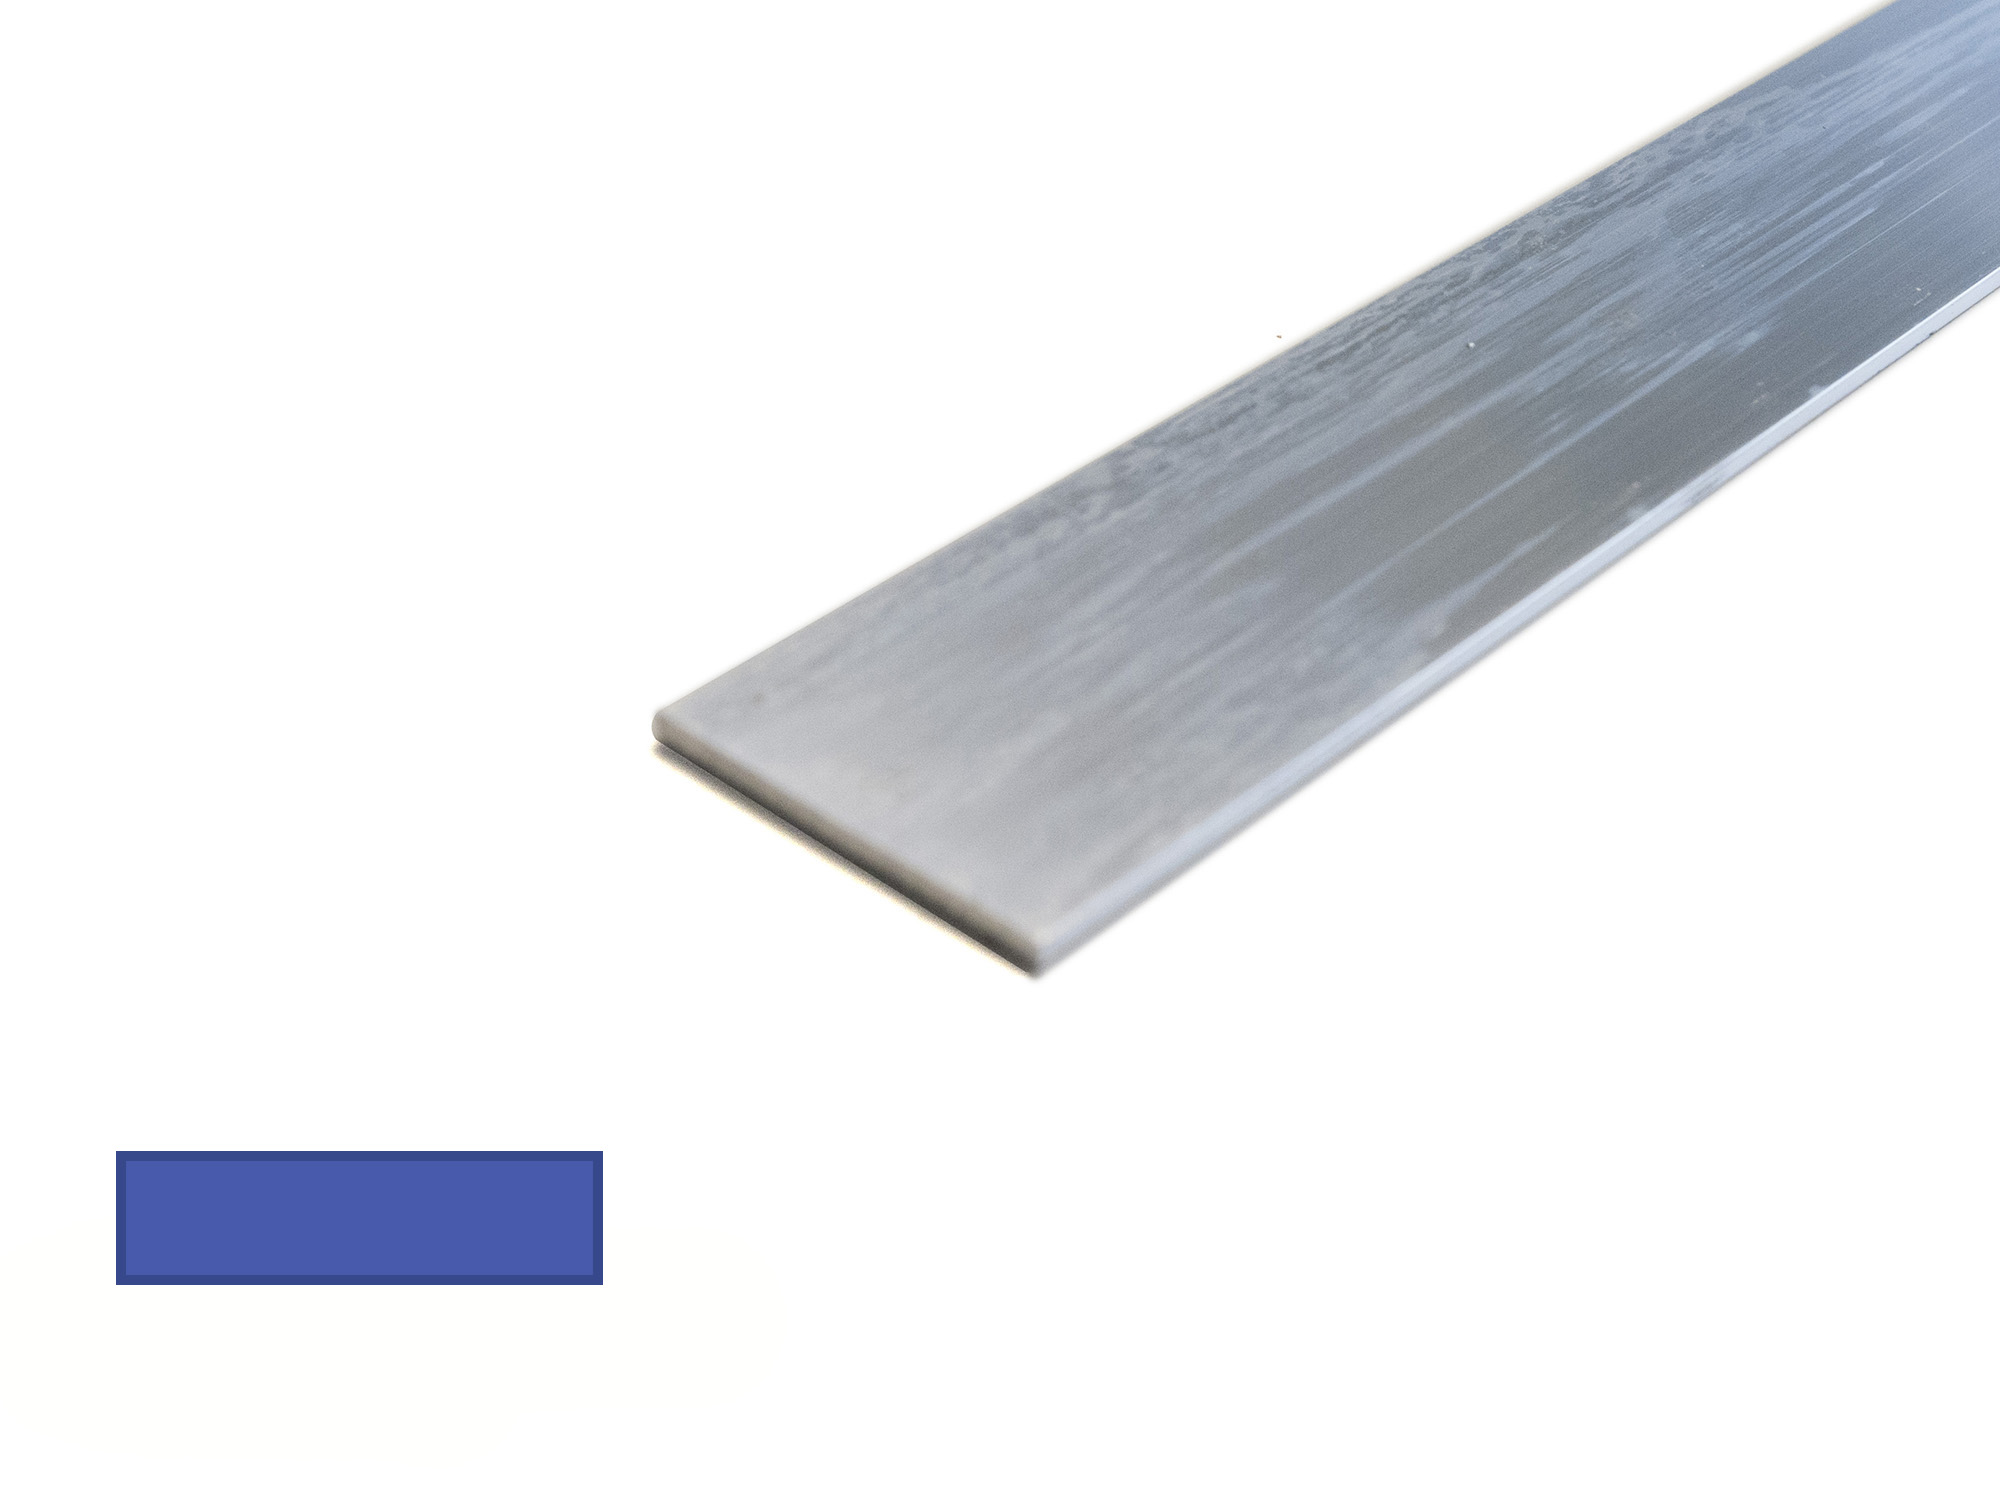 aluminium strip 15 x 4mm